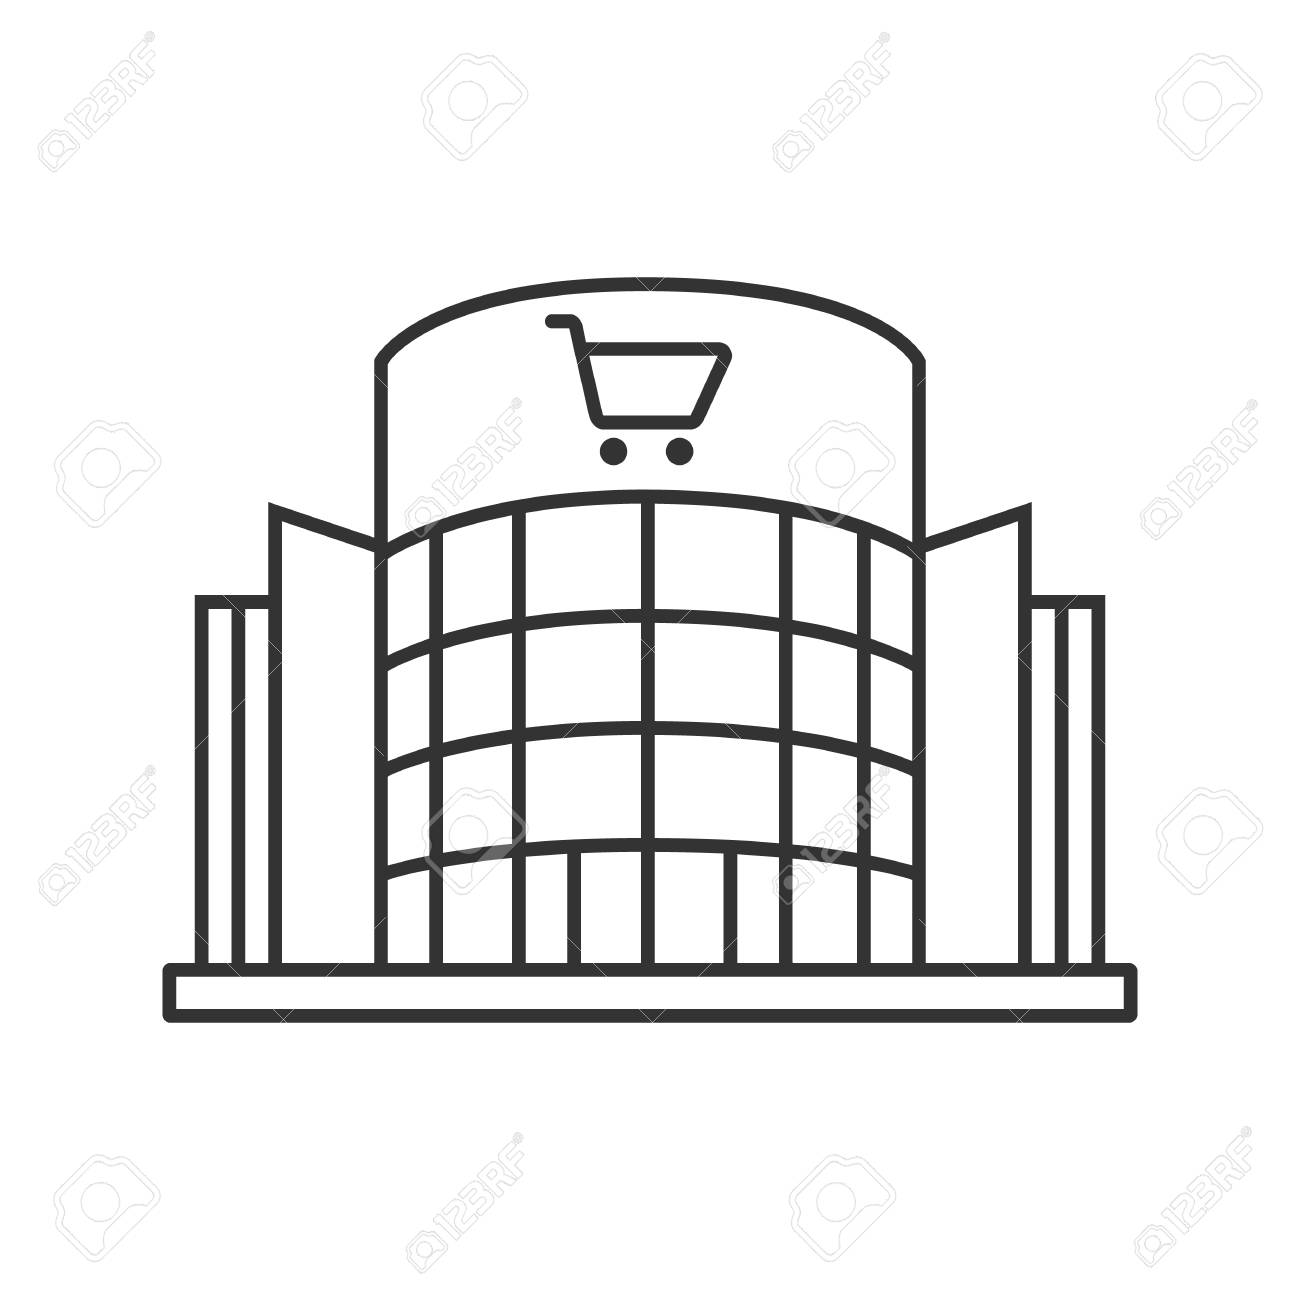 Shopping Centre Linear Icon Mall Building Thin Line Illustration Supermarket Contour Symbol